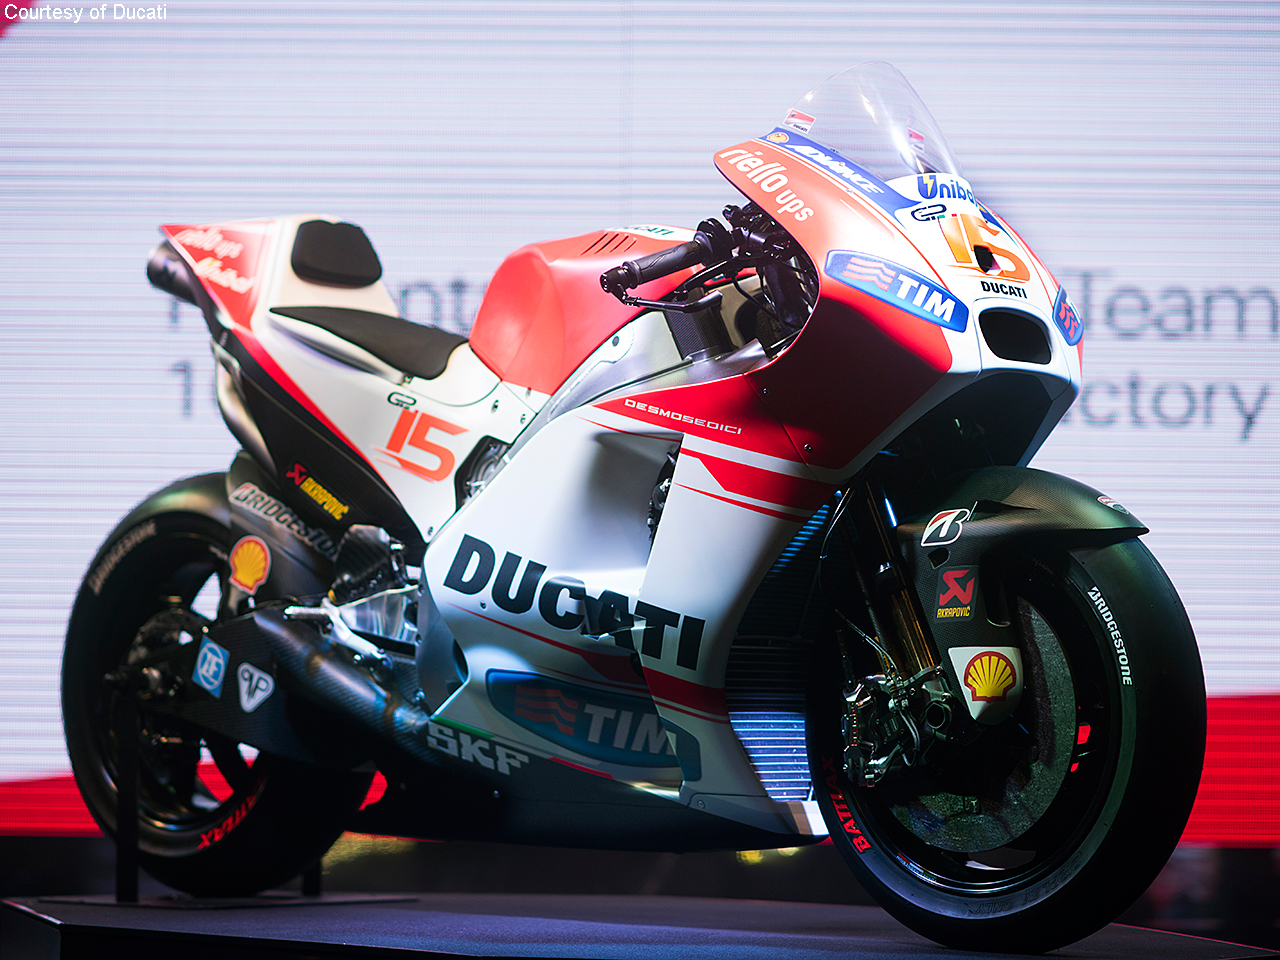 The first to speak was Claudio Domenicali CEO of Ducati Motor Holding 1280x960